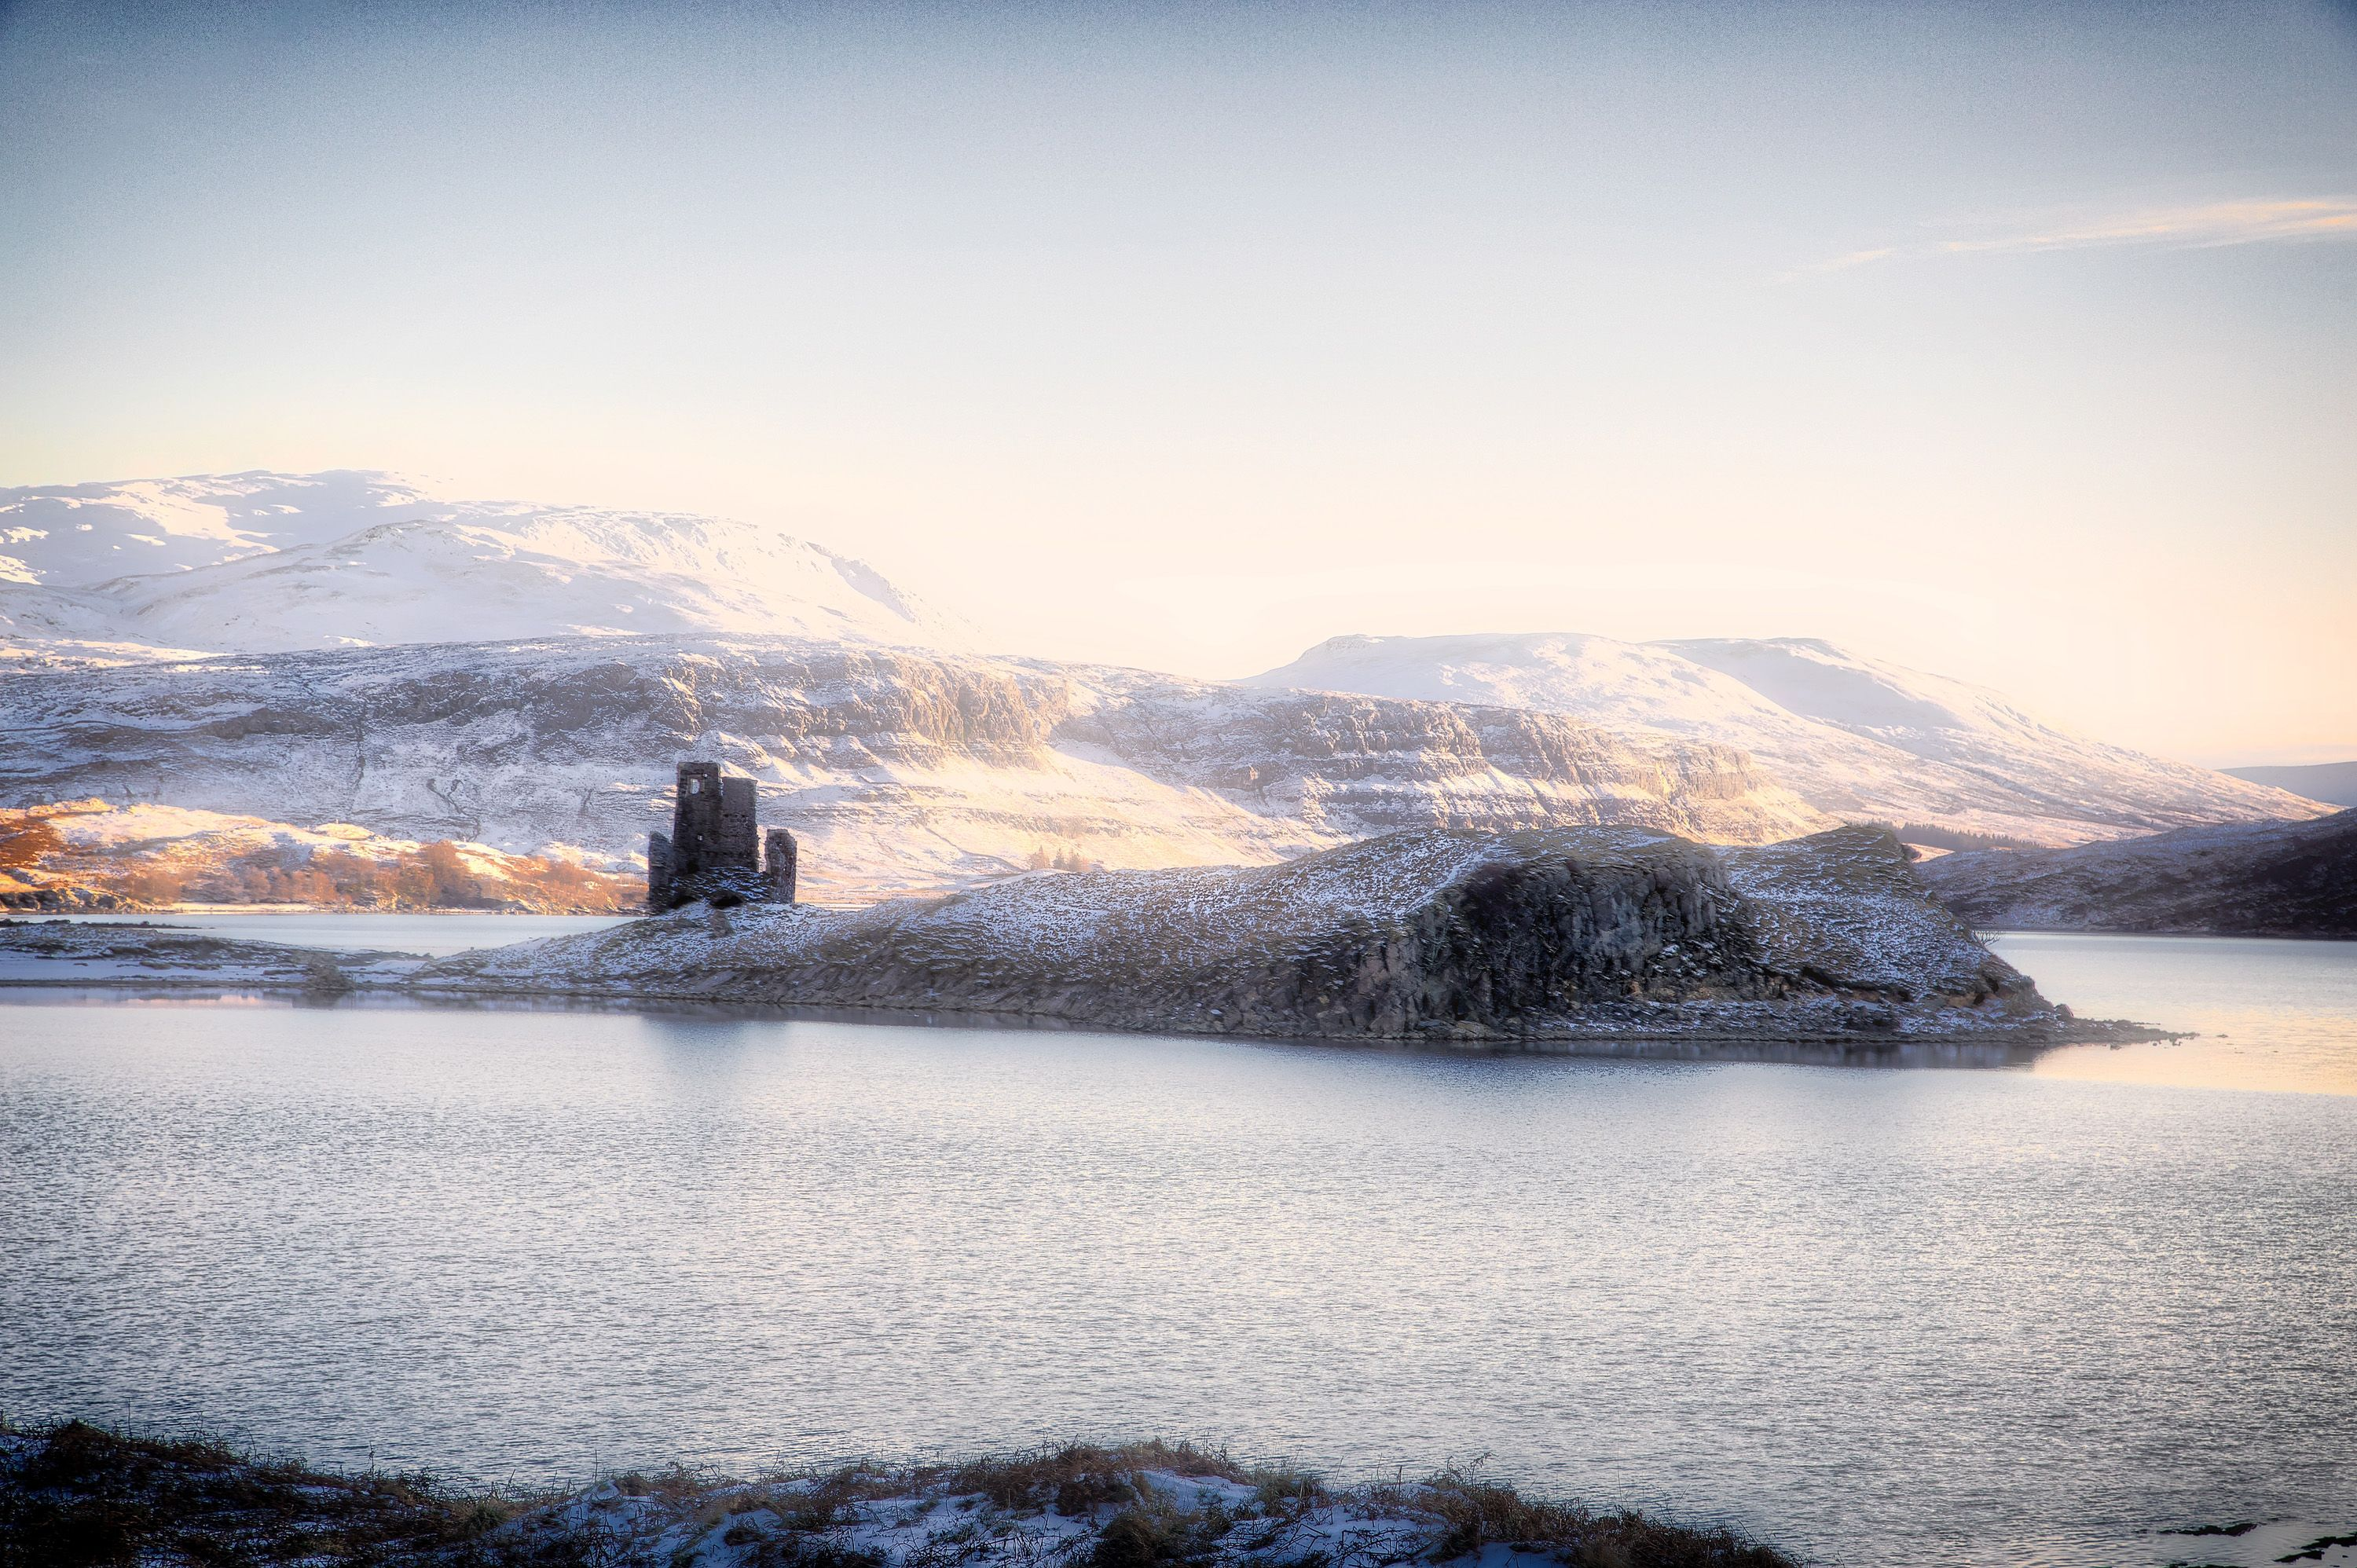 What a fab shot of a Scottish ruined castle in the winter ...